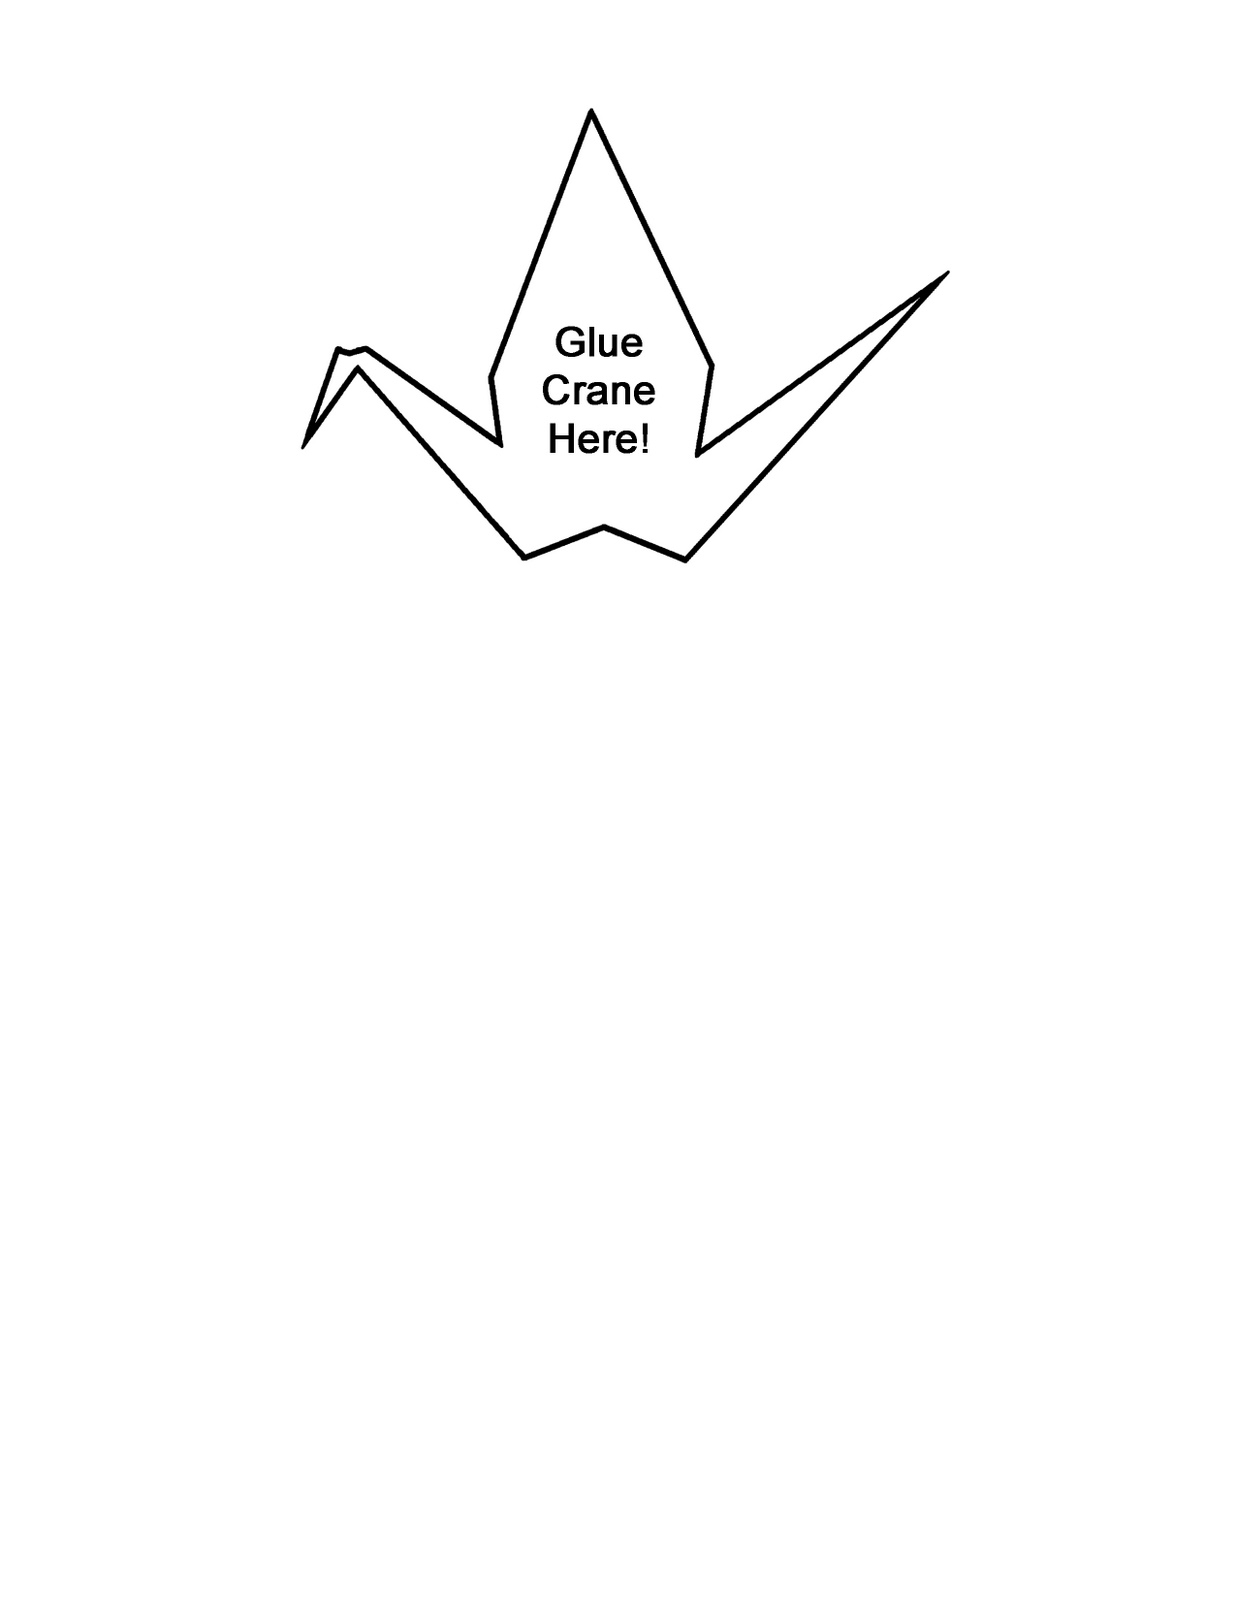 Paper Crane Drawing At Free For Personal Use Origami Diagram 1236x1600 Cranes Of Thanks November 2011